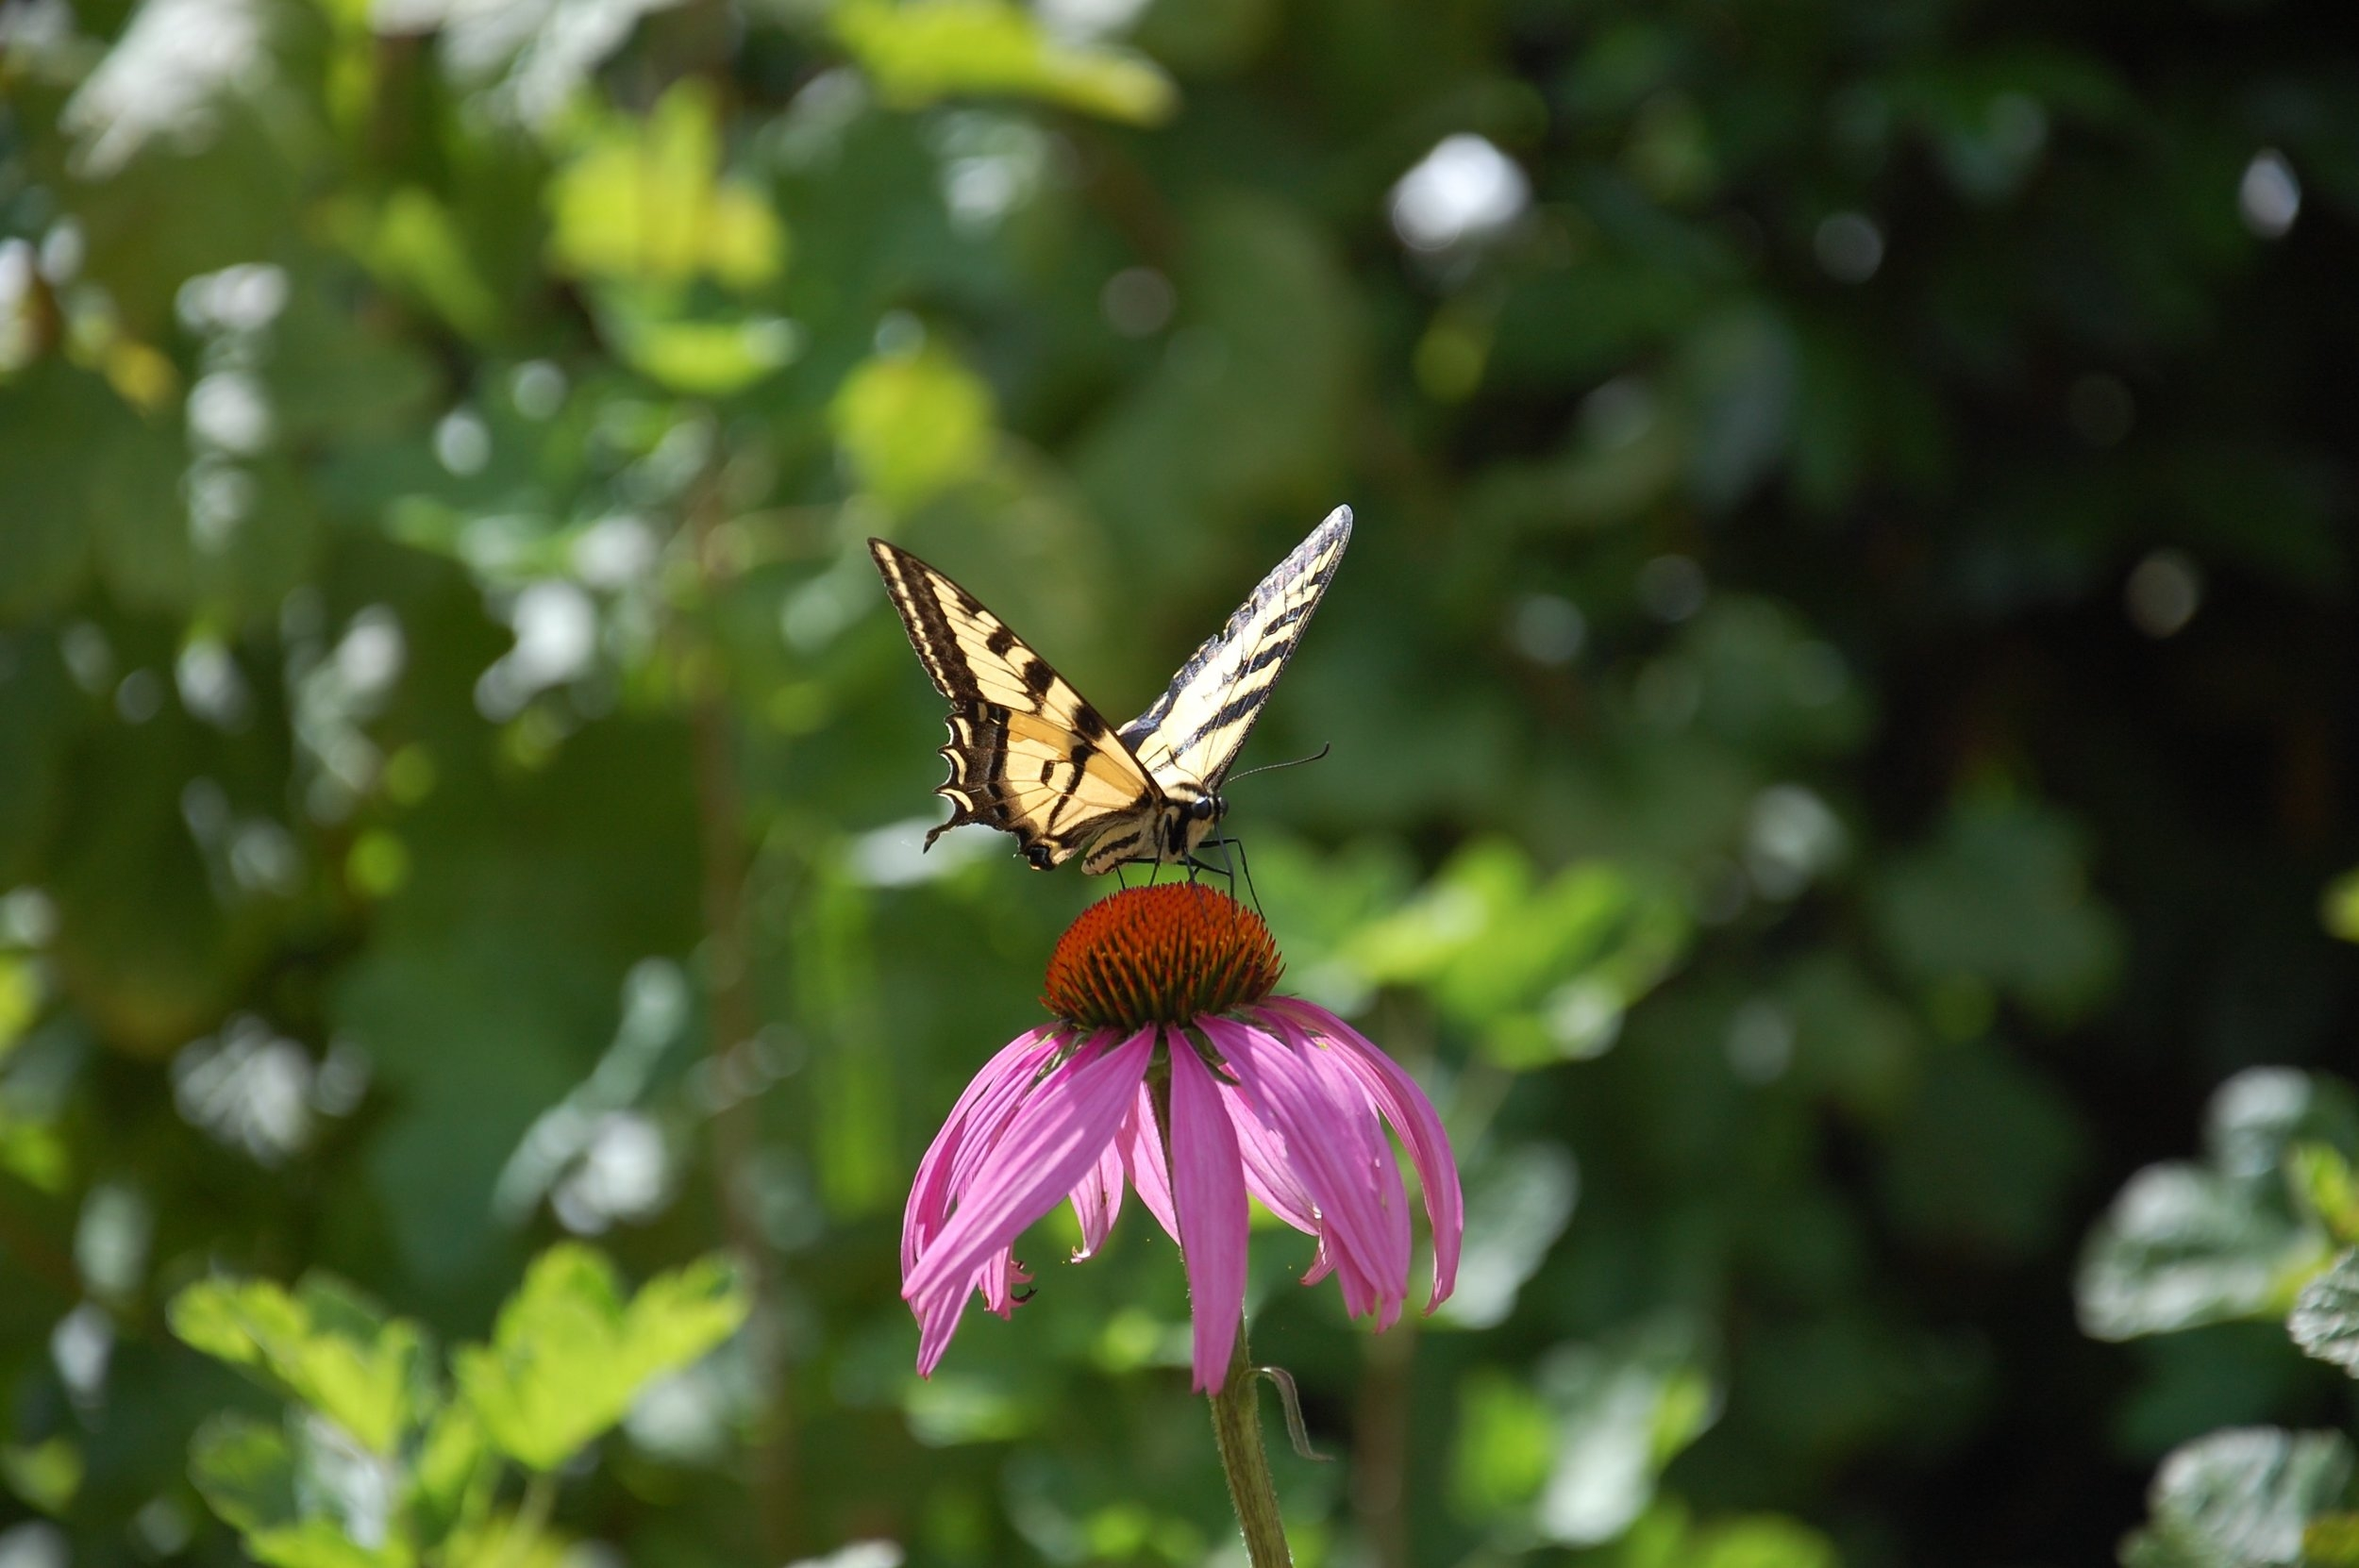 A swallowtail butterfly lands on a vibrant flower at Jackson Bottom Wetlands, showing how simple the relationship between plants and animals can be in the natural areas that we explore.